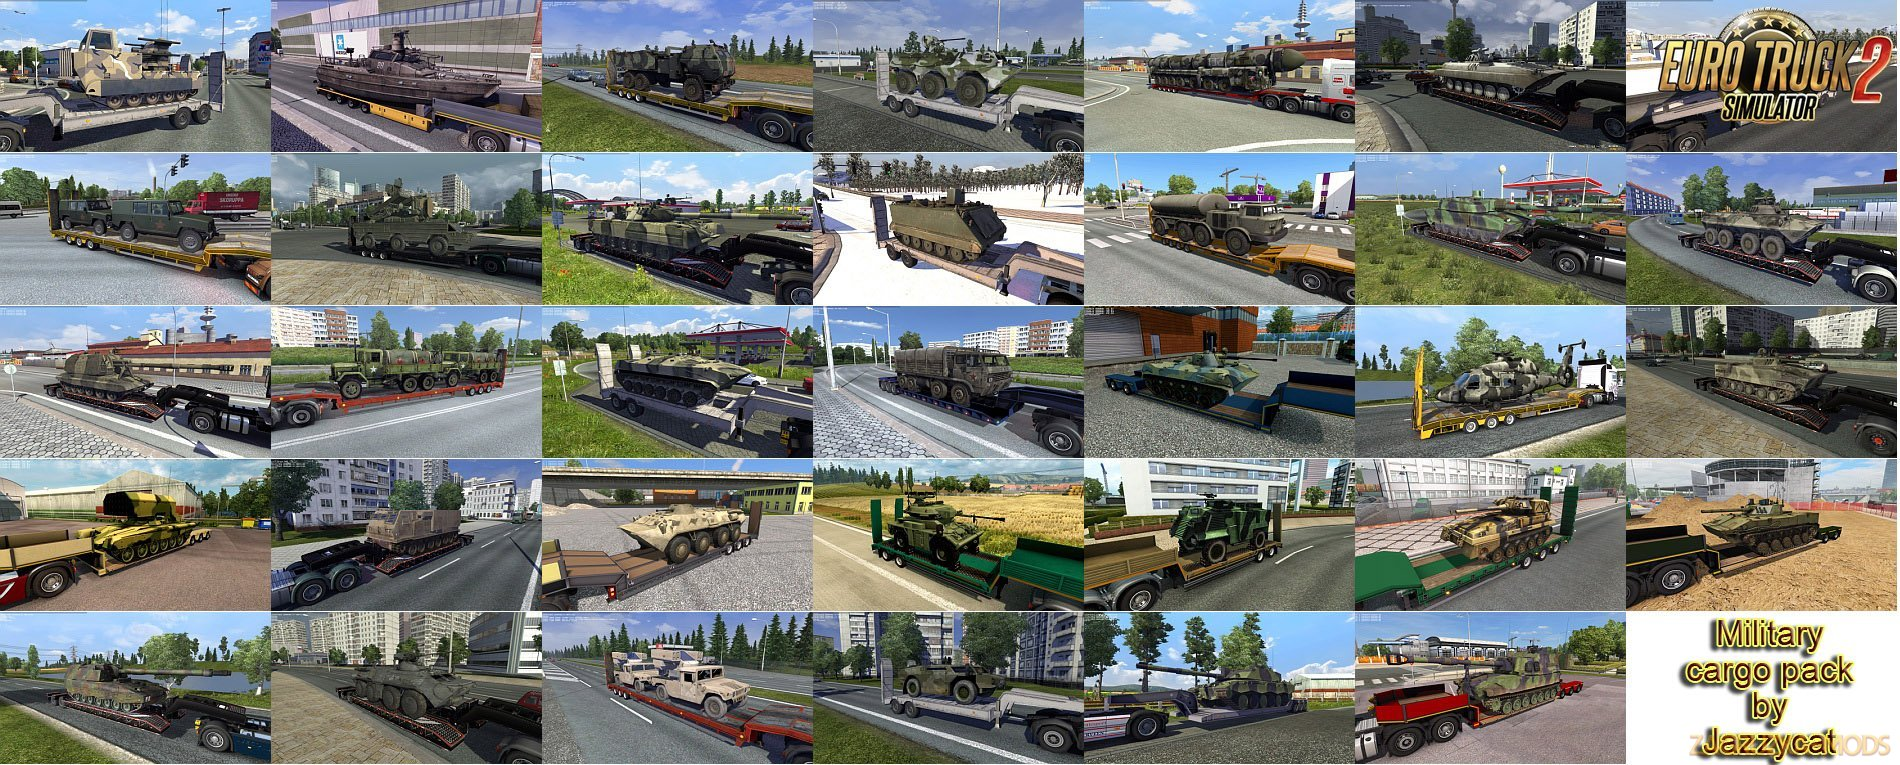 Military Cargo Pack v2.7 by Jazzycat